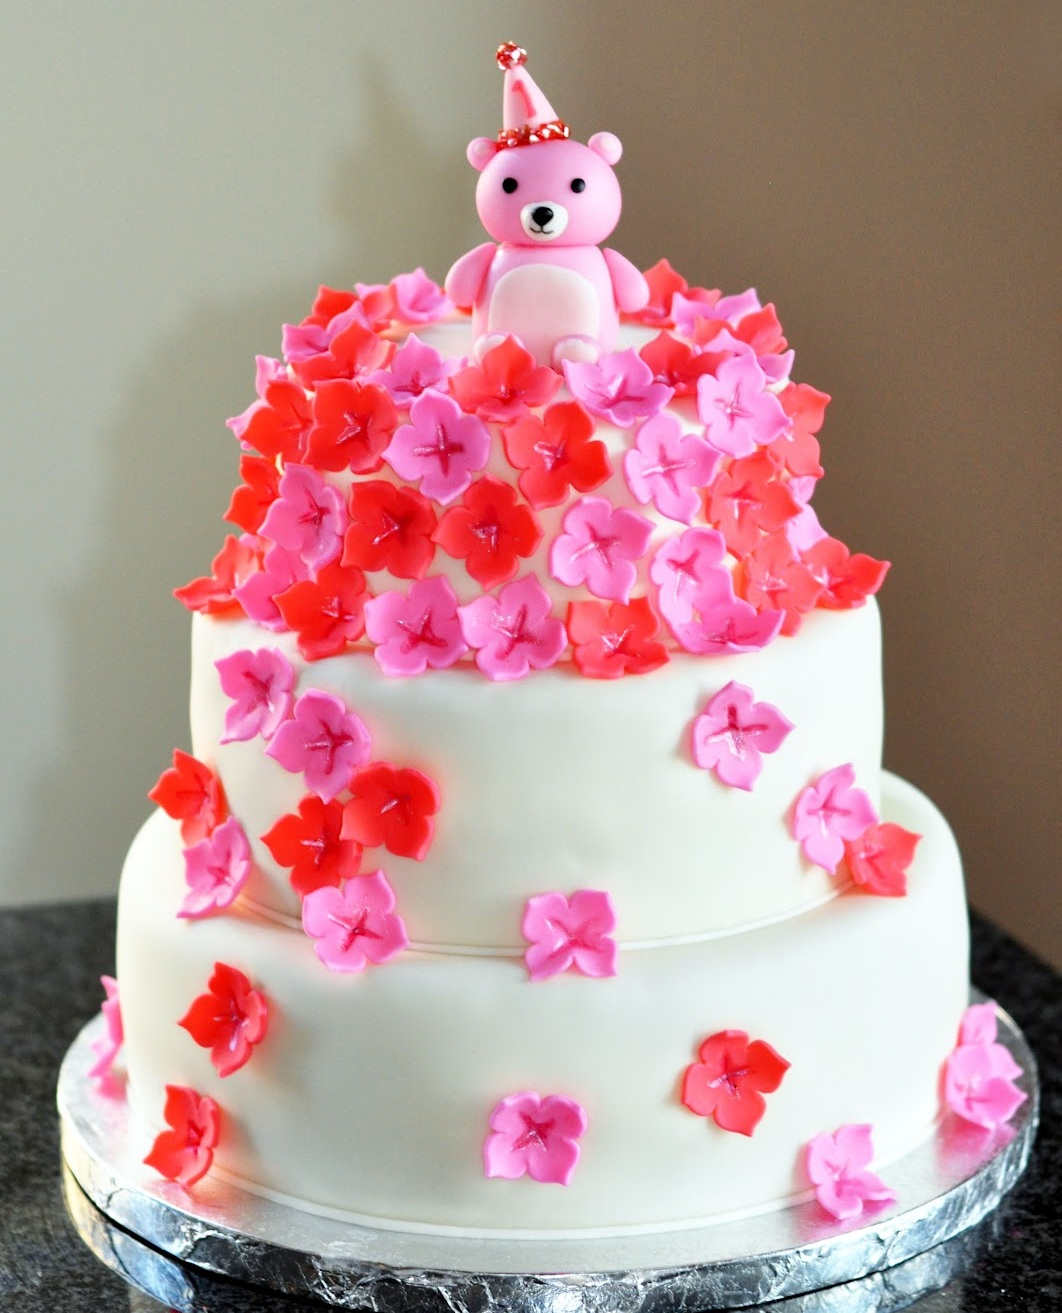 Sweet Kat's Creations: Teddy Bear Flower Cake